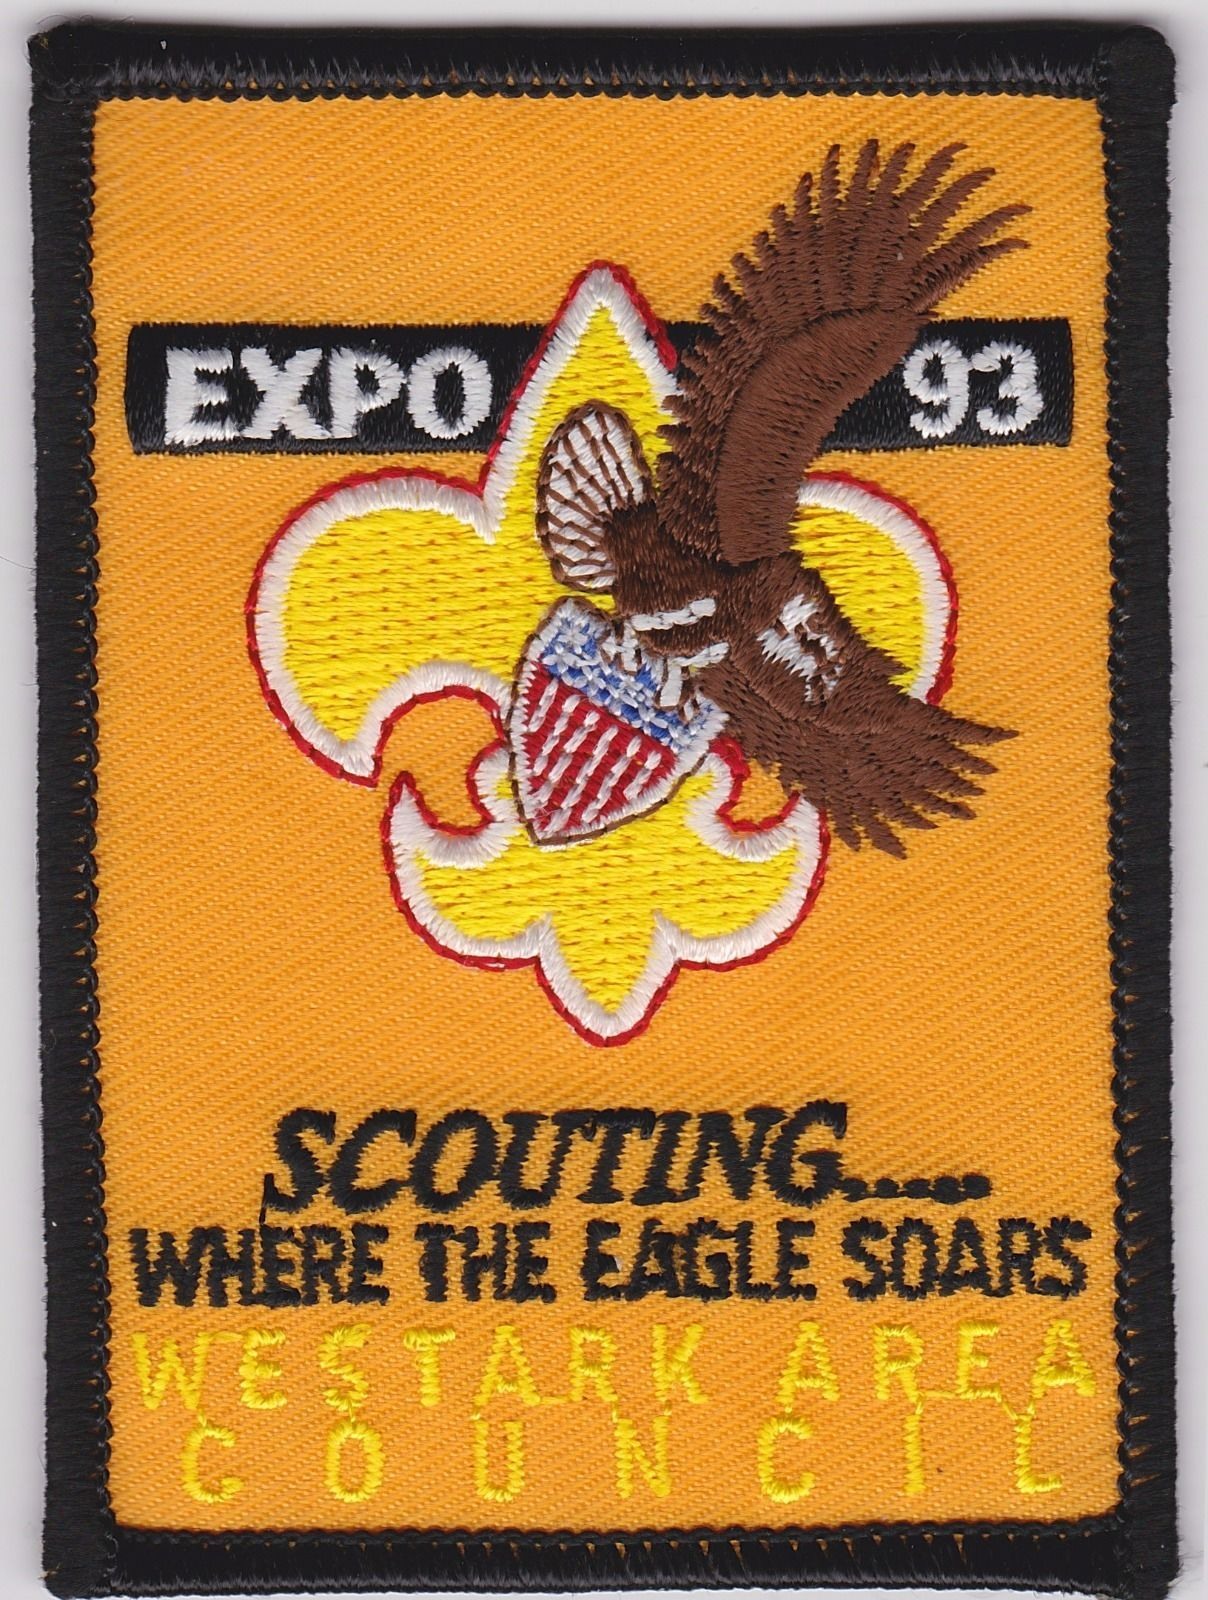 Westark Area Council Patch - 1993 Expo - Scouting Where The Eagle Soars